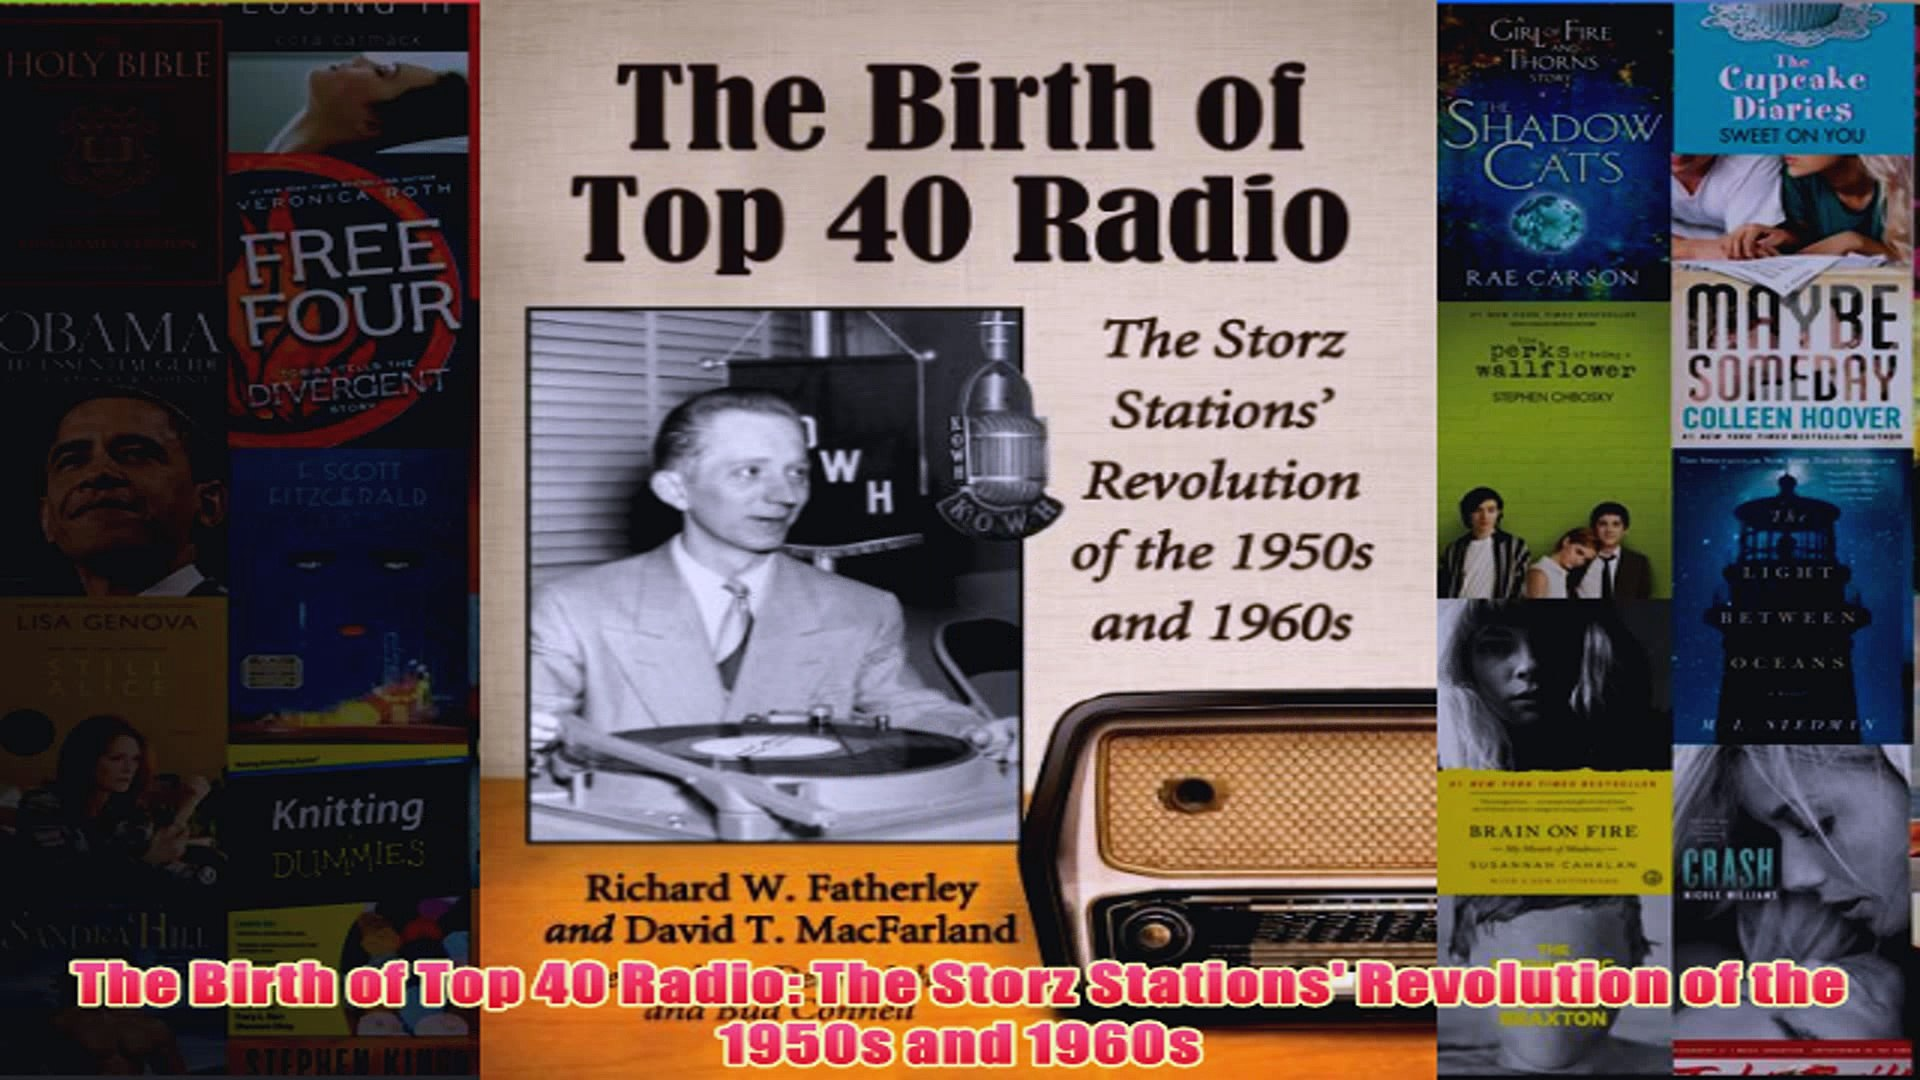 Download PDF  The Birth of Top 40 Radio The Storz Stations Revolution of the 1950s and 1960s FULL FR